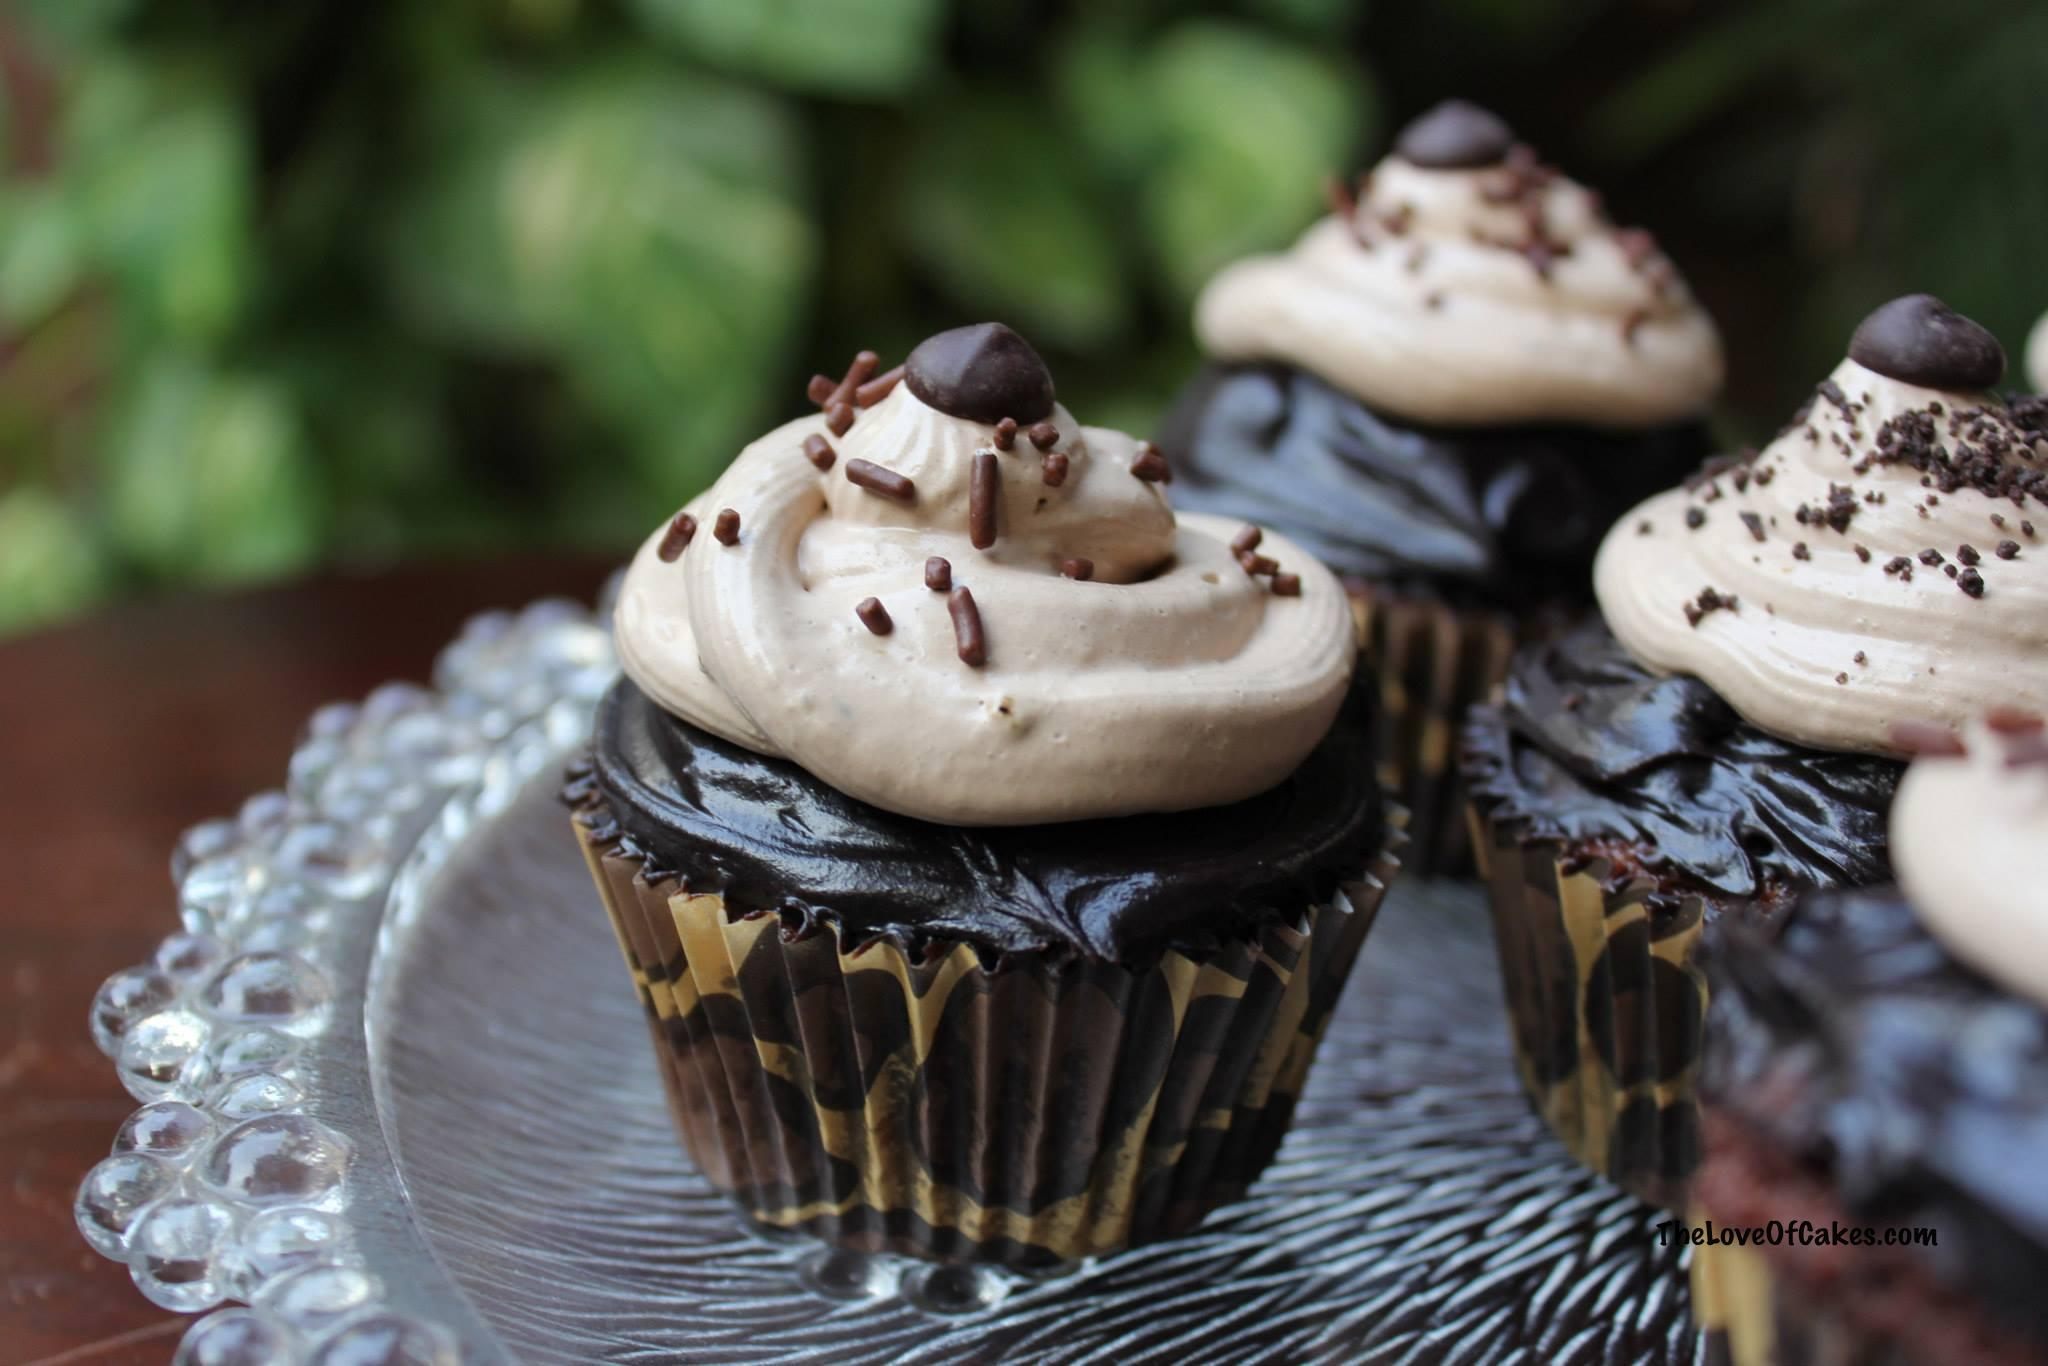 Chocolate cupcakes with chocolate ganache and mocha whipped cream